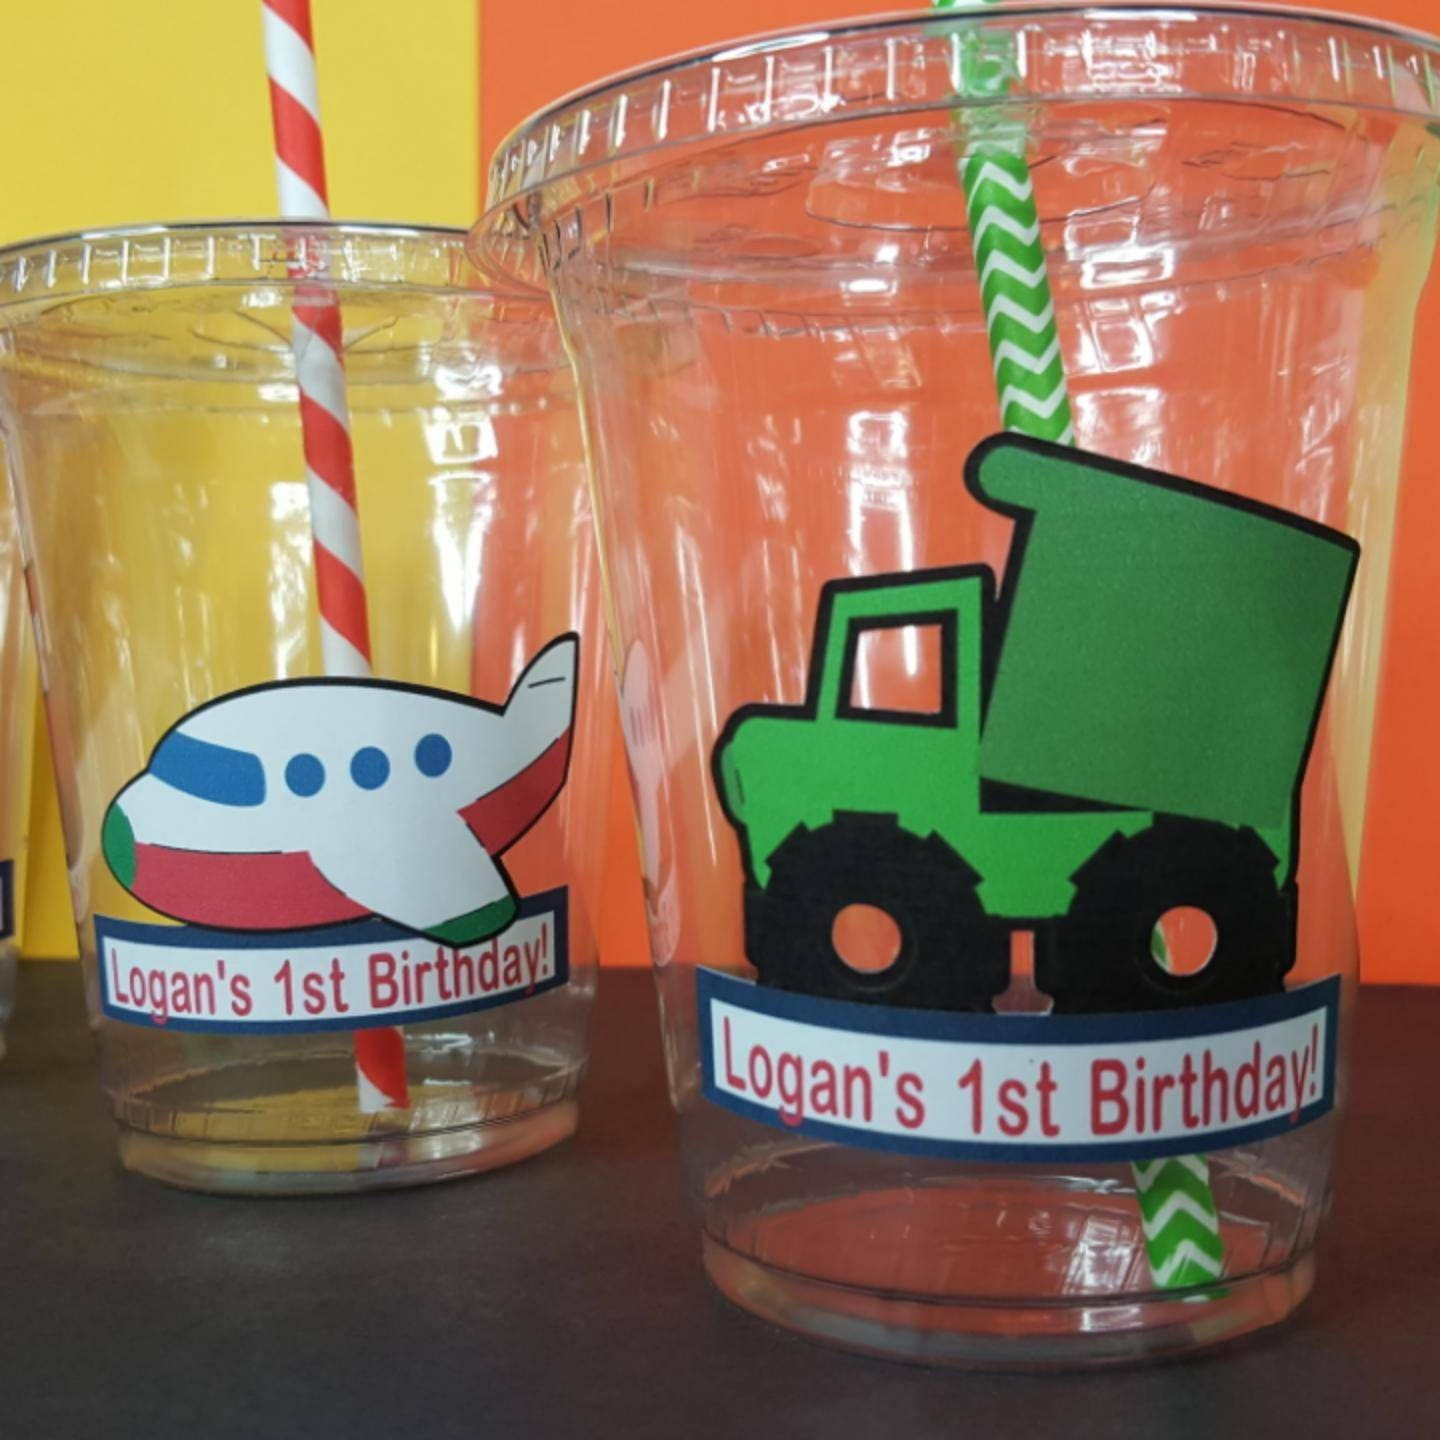 12 Personalized Transporation Themed Birthday Party Cups with Straws and Lids!